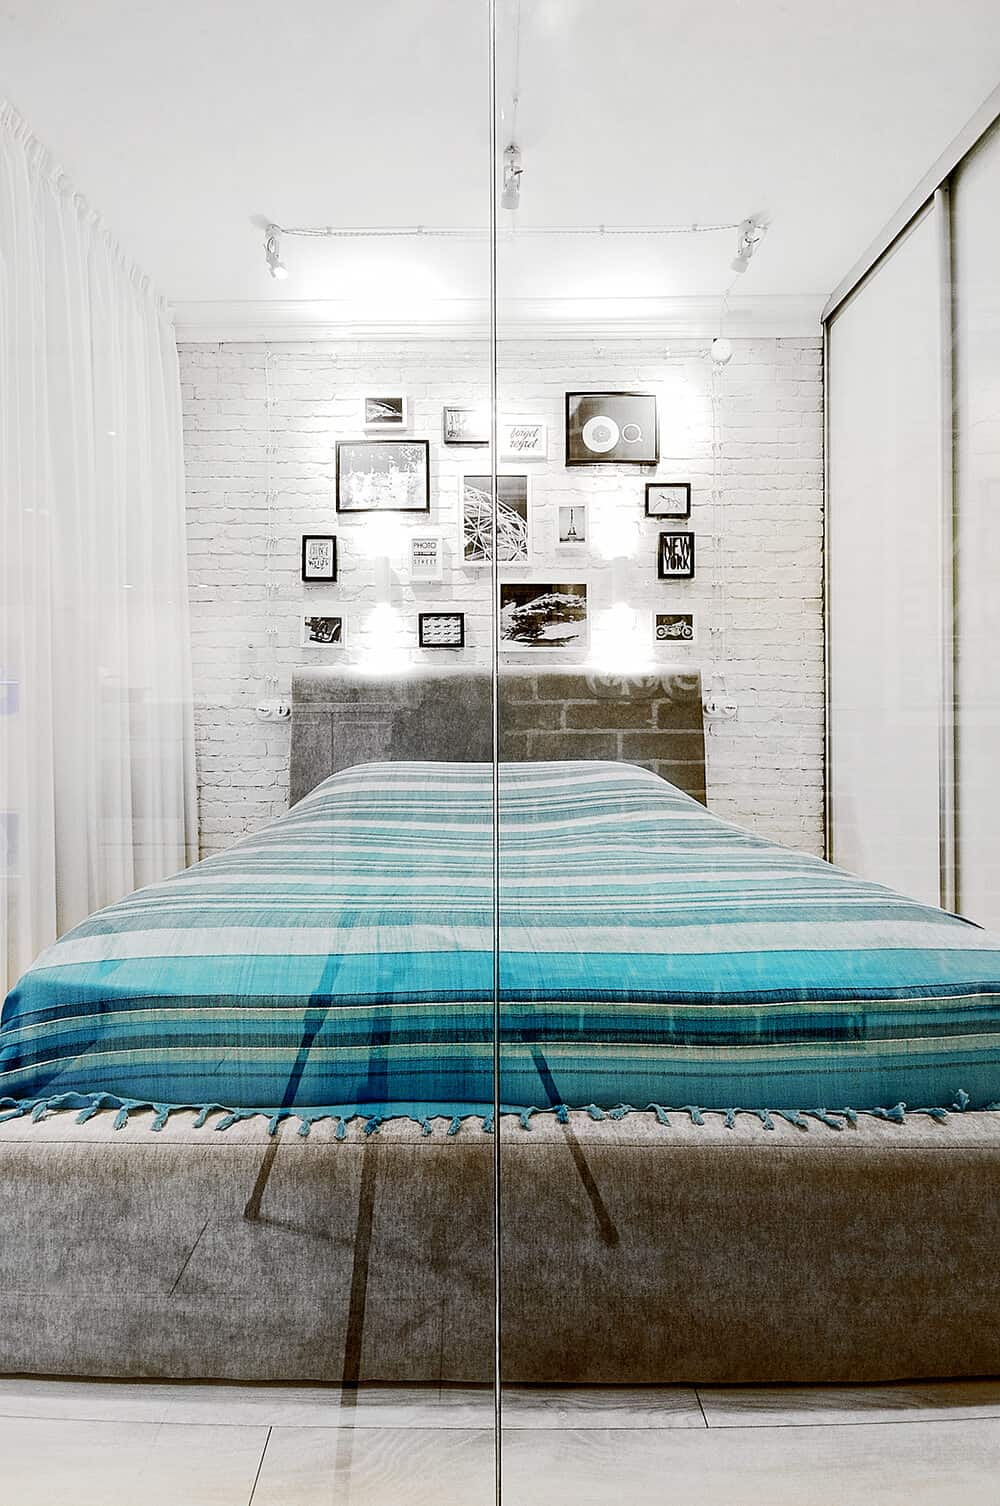 A small bedroom designed with gallery frames mounted on the white brick wall. Striped textiles stand out against the white walls and sheer curtains.